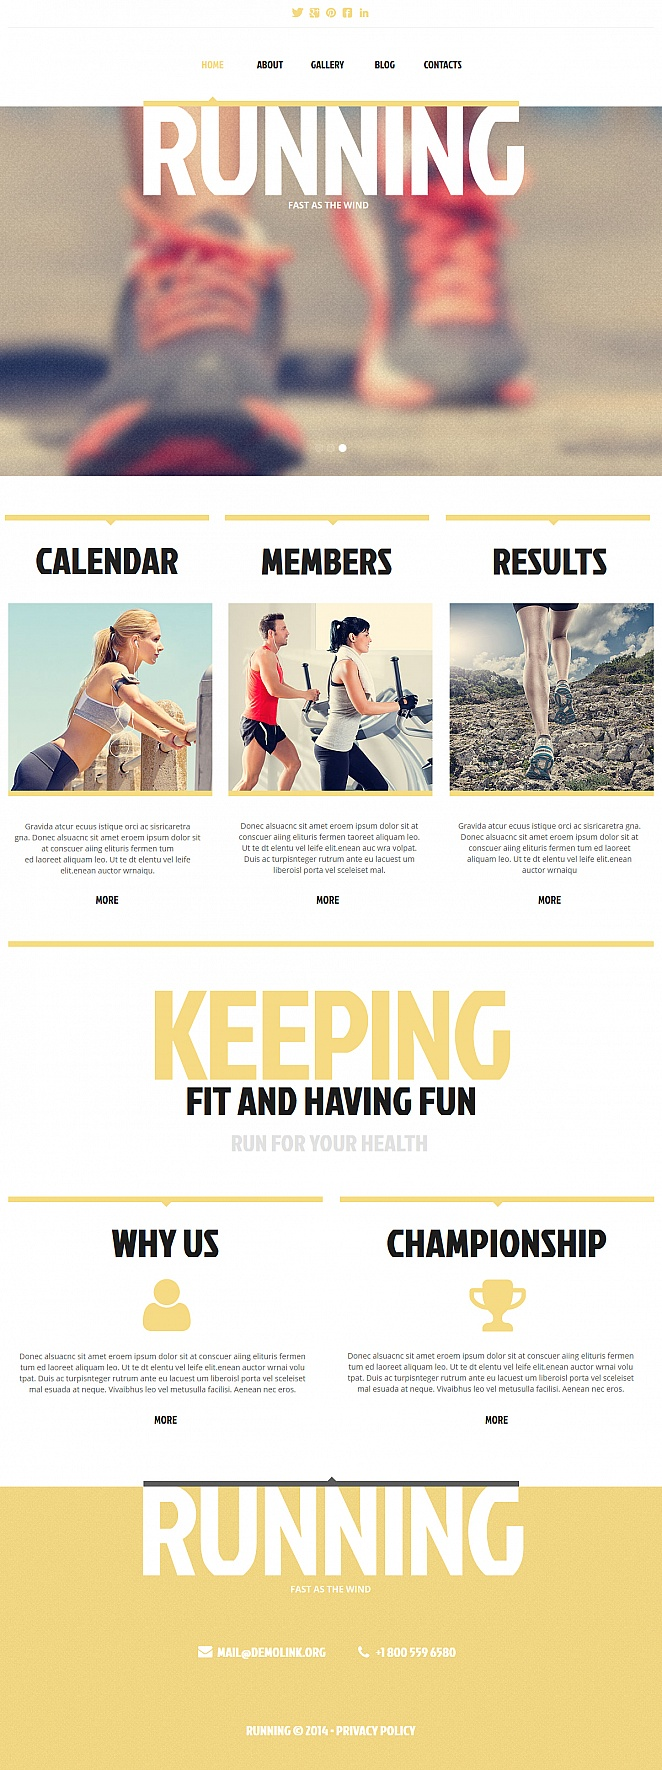 Running Website Template with a Fullwidth Header Image - image